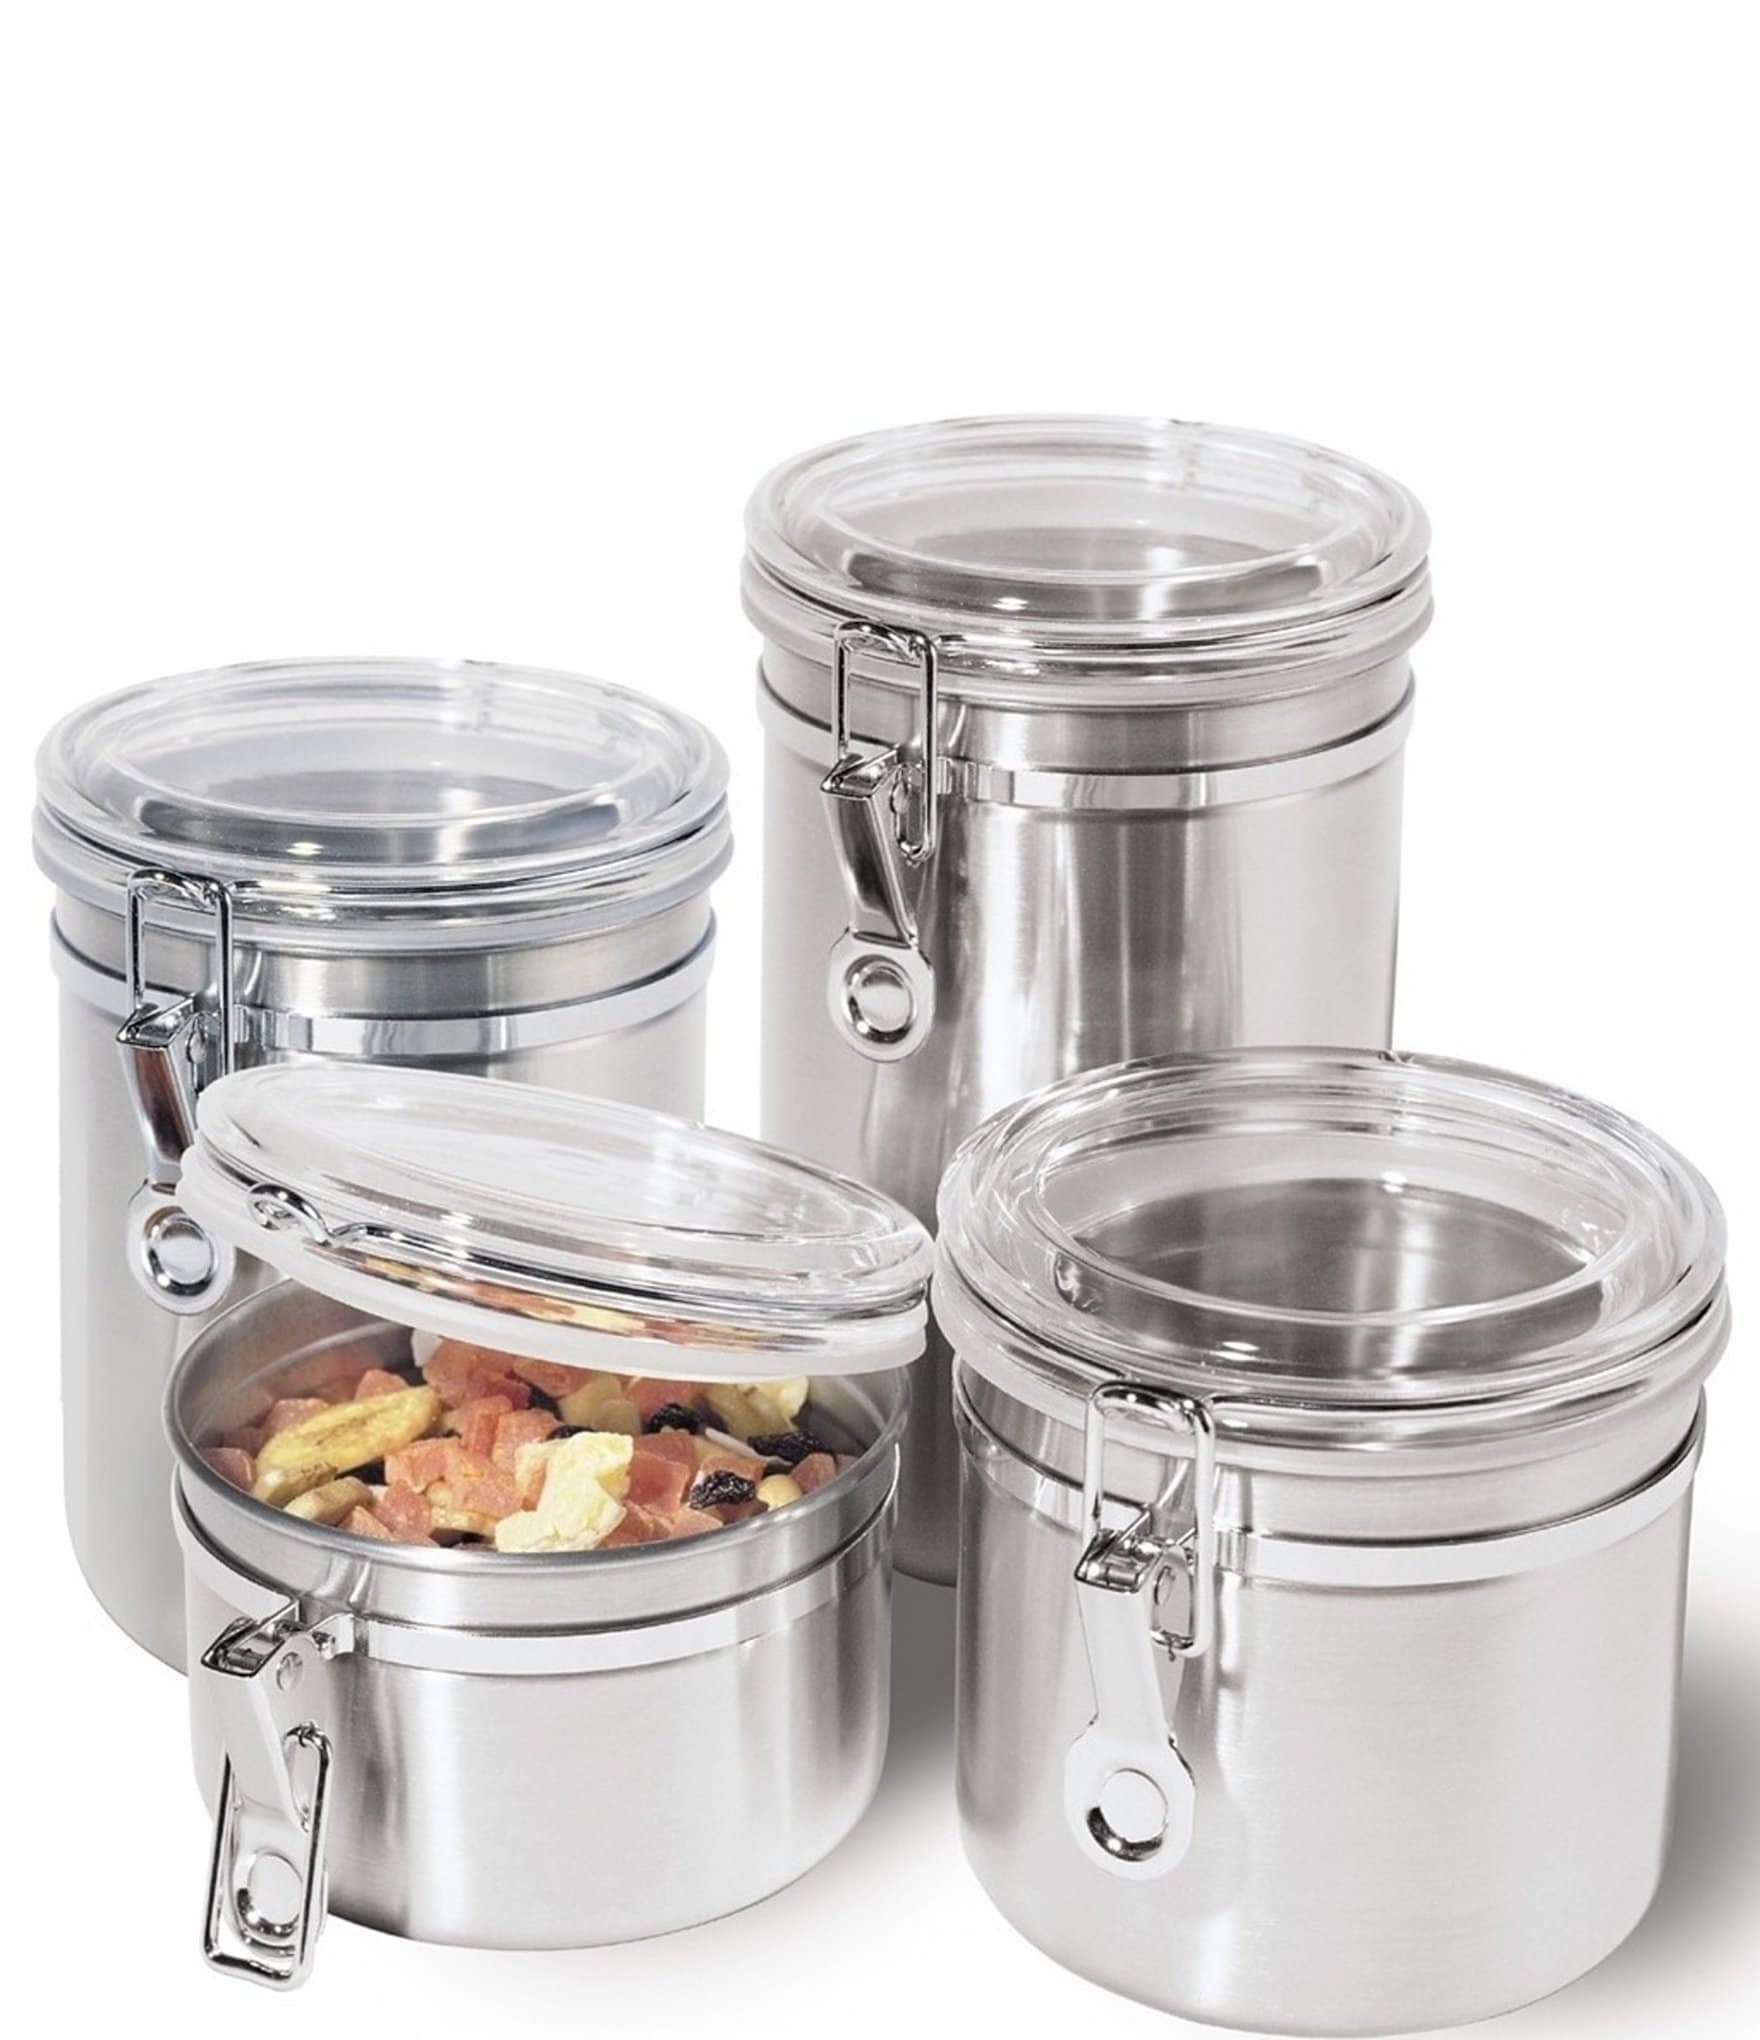 And tagged as modern kitchen canisters in modern kitchen category - And Tagged As Modern Kitchen Canisters In Modern Kitchen Category 24